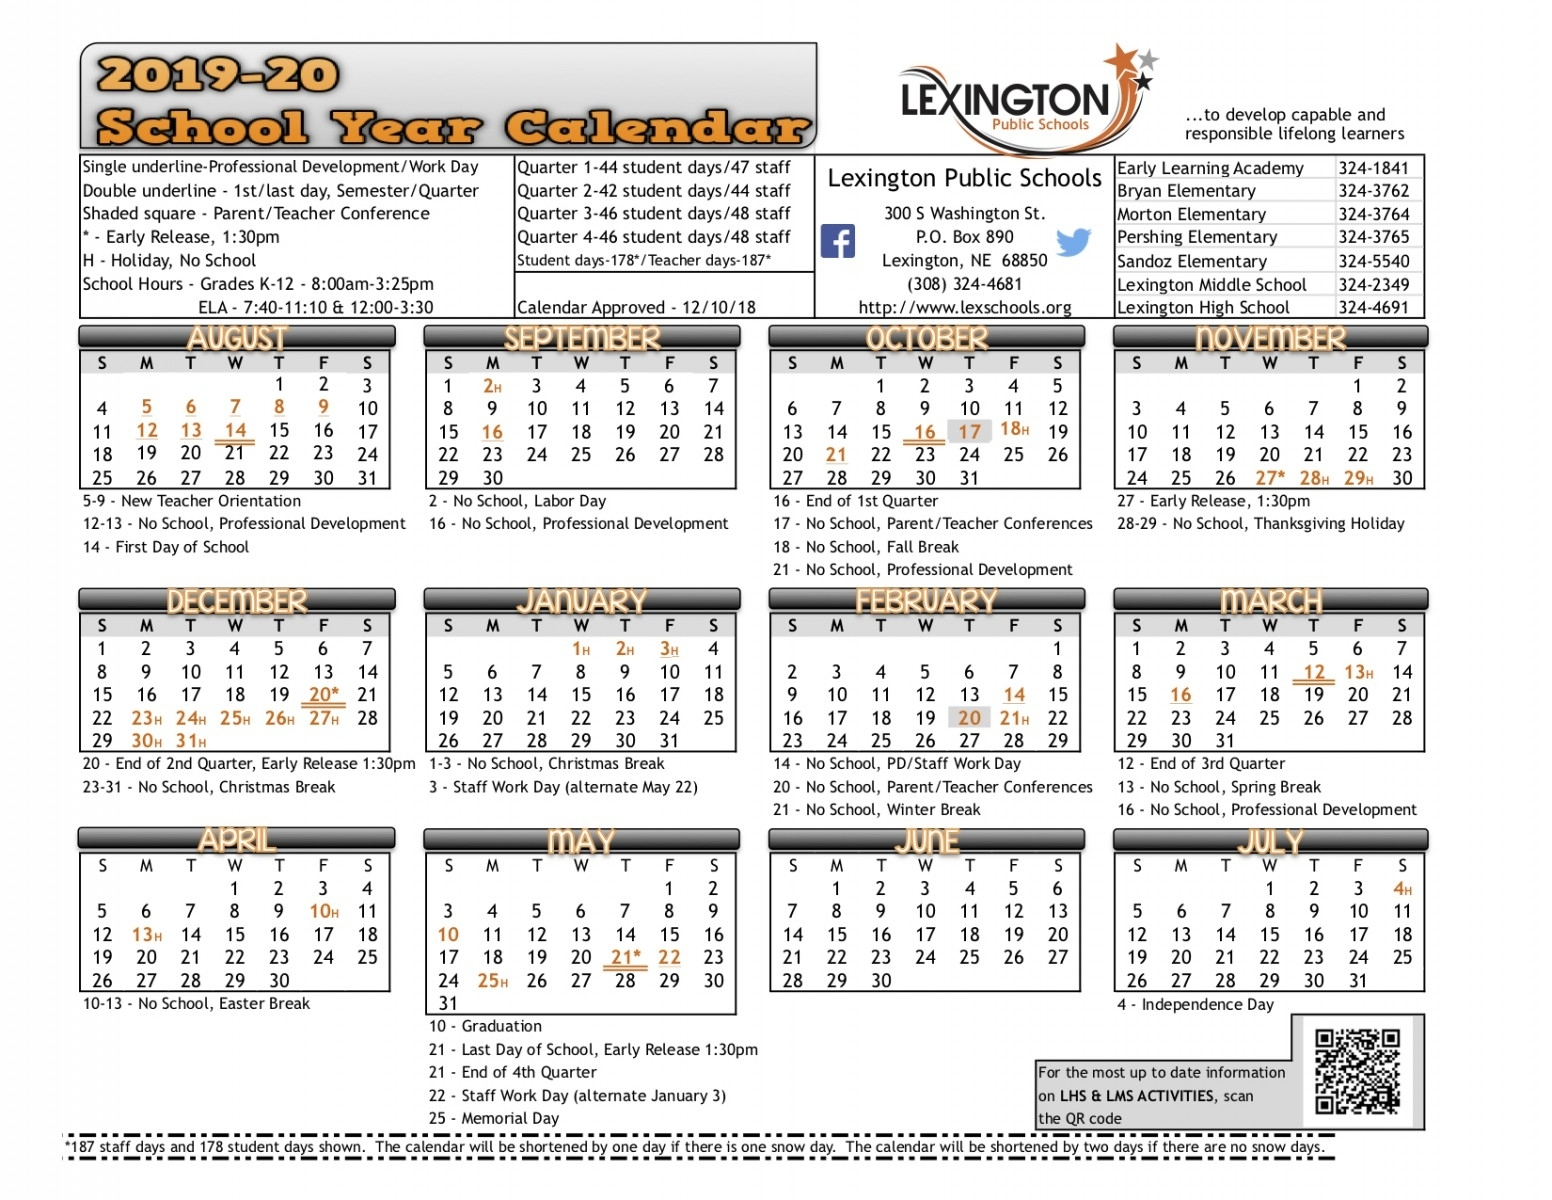 School Year Calendar - Lexington Public Schools